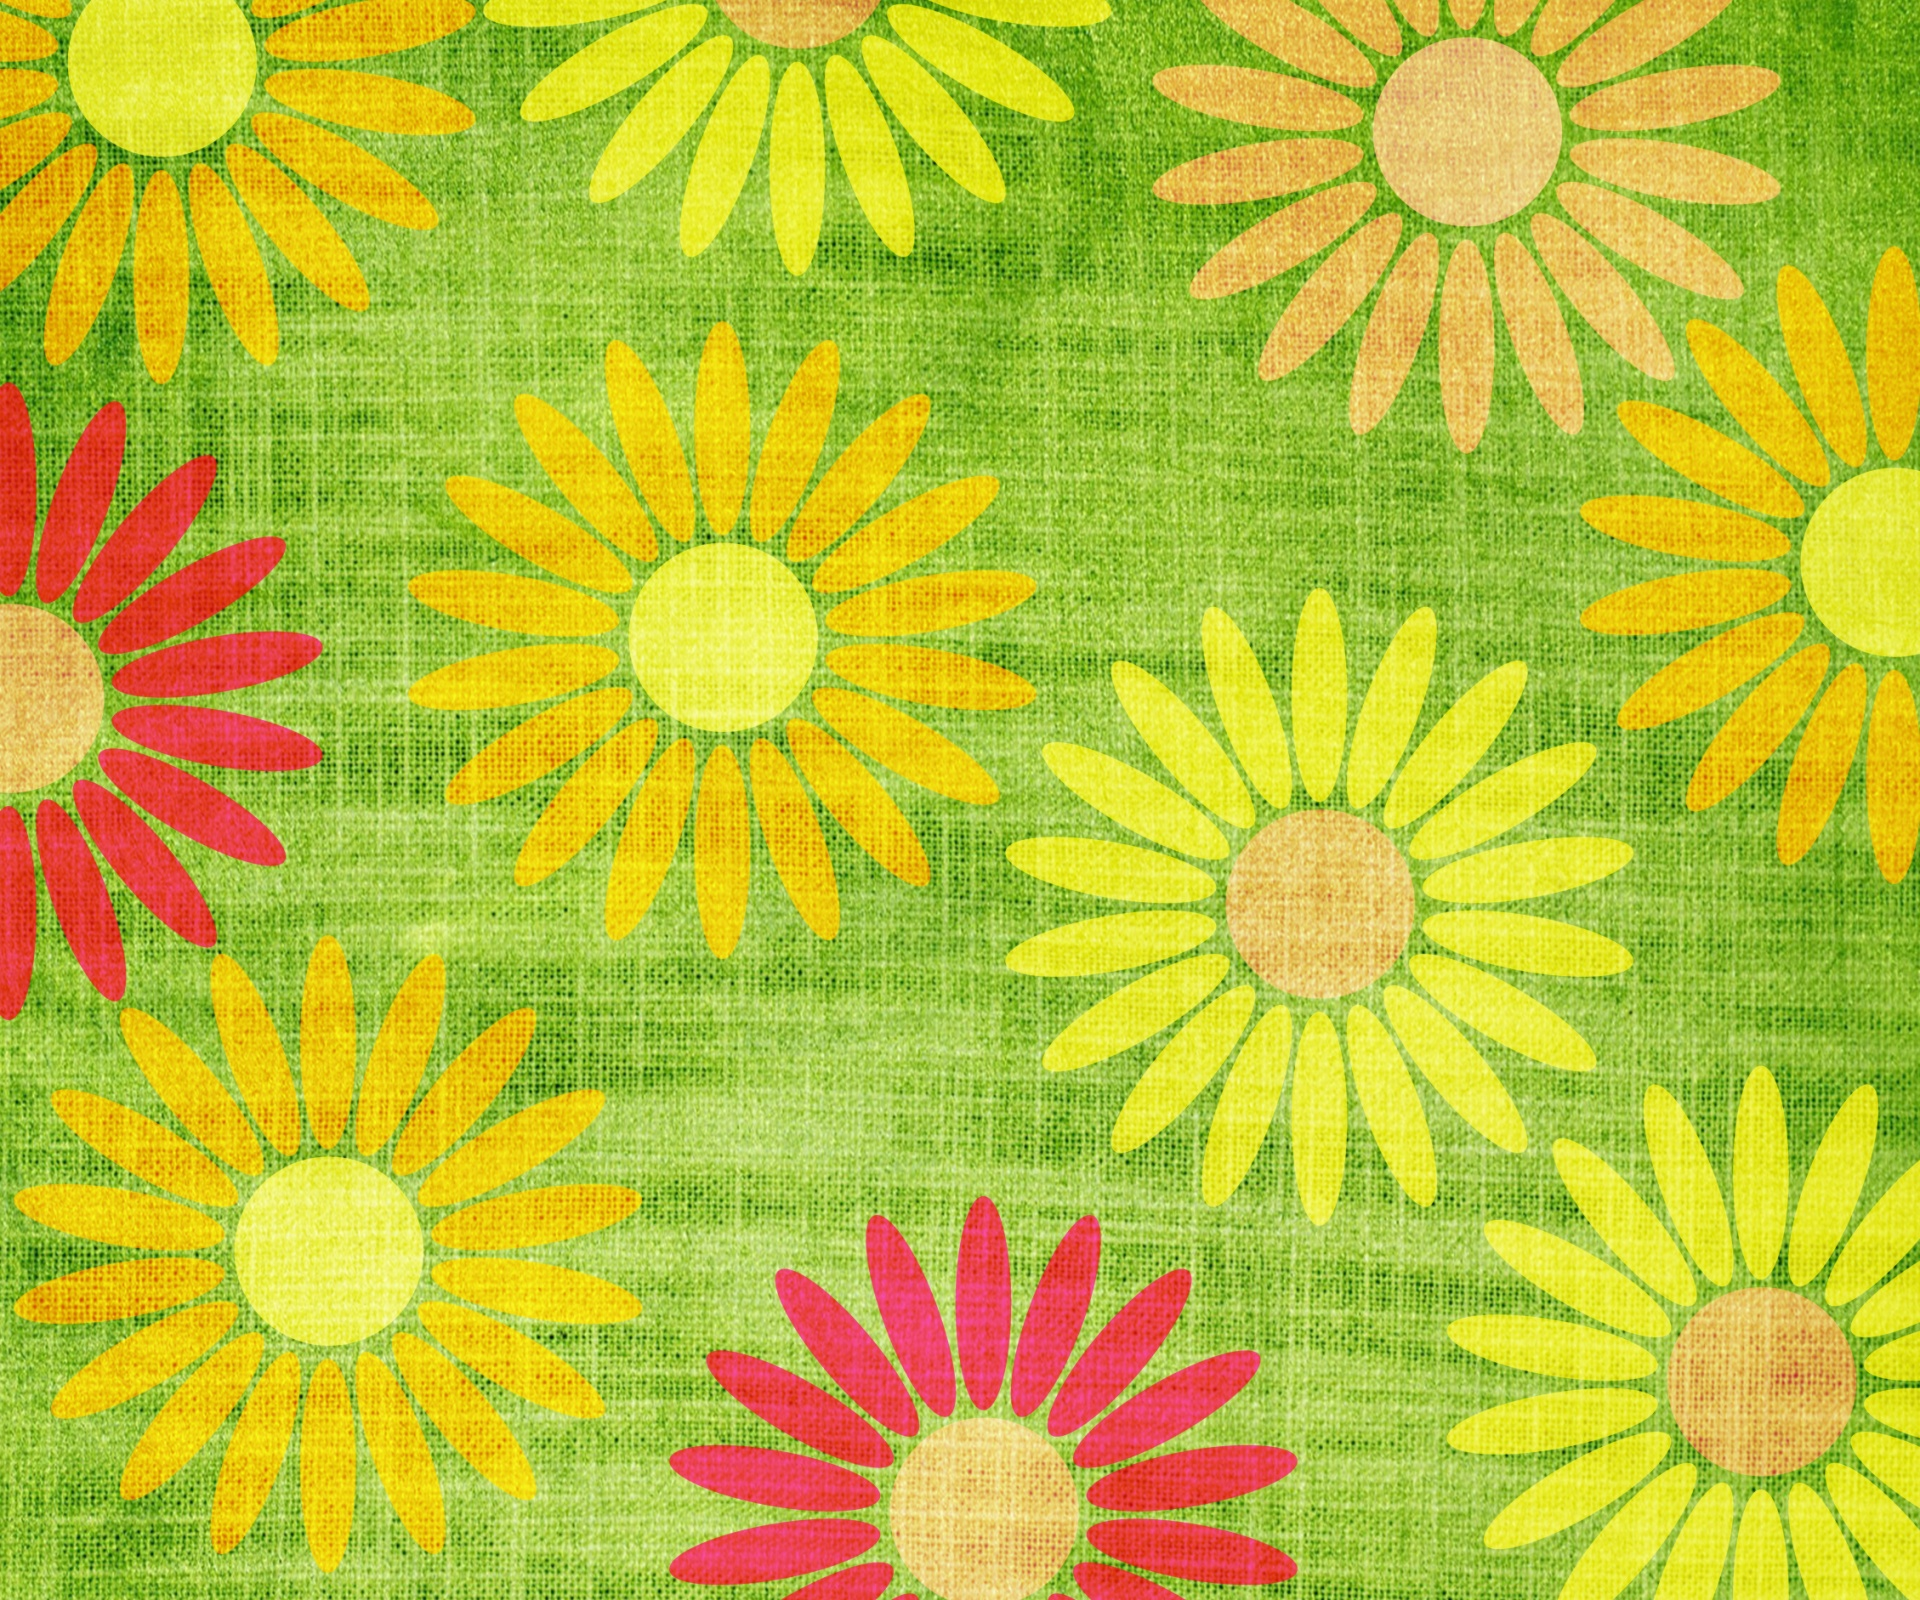 Floral Flowers Fabric Cloth Material Free Photo From Needpix Com